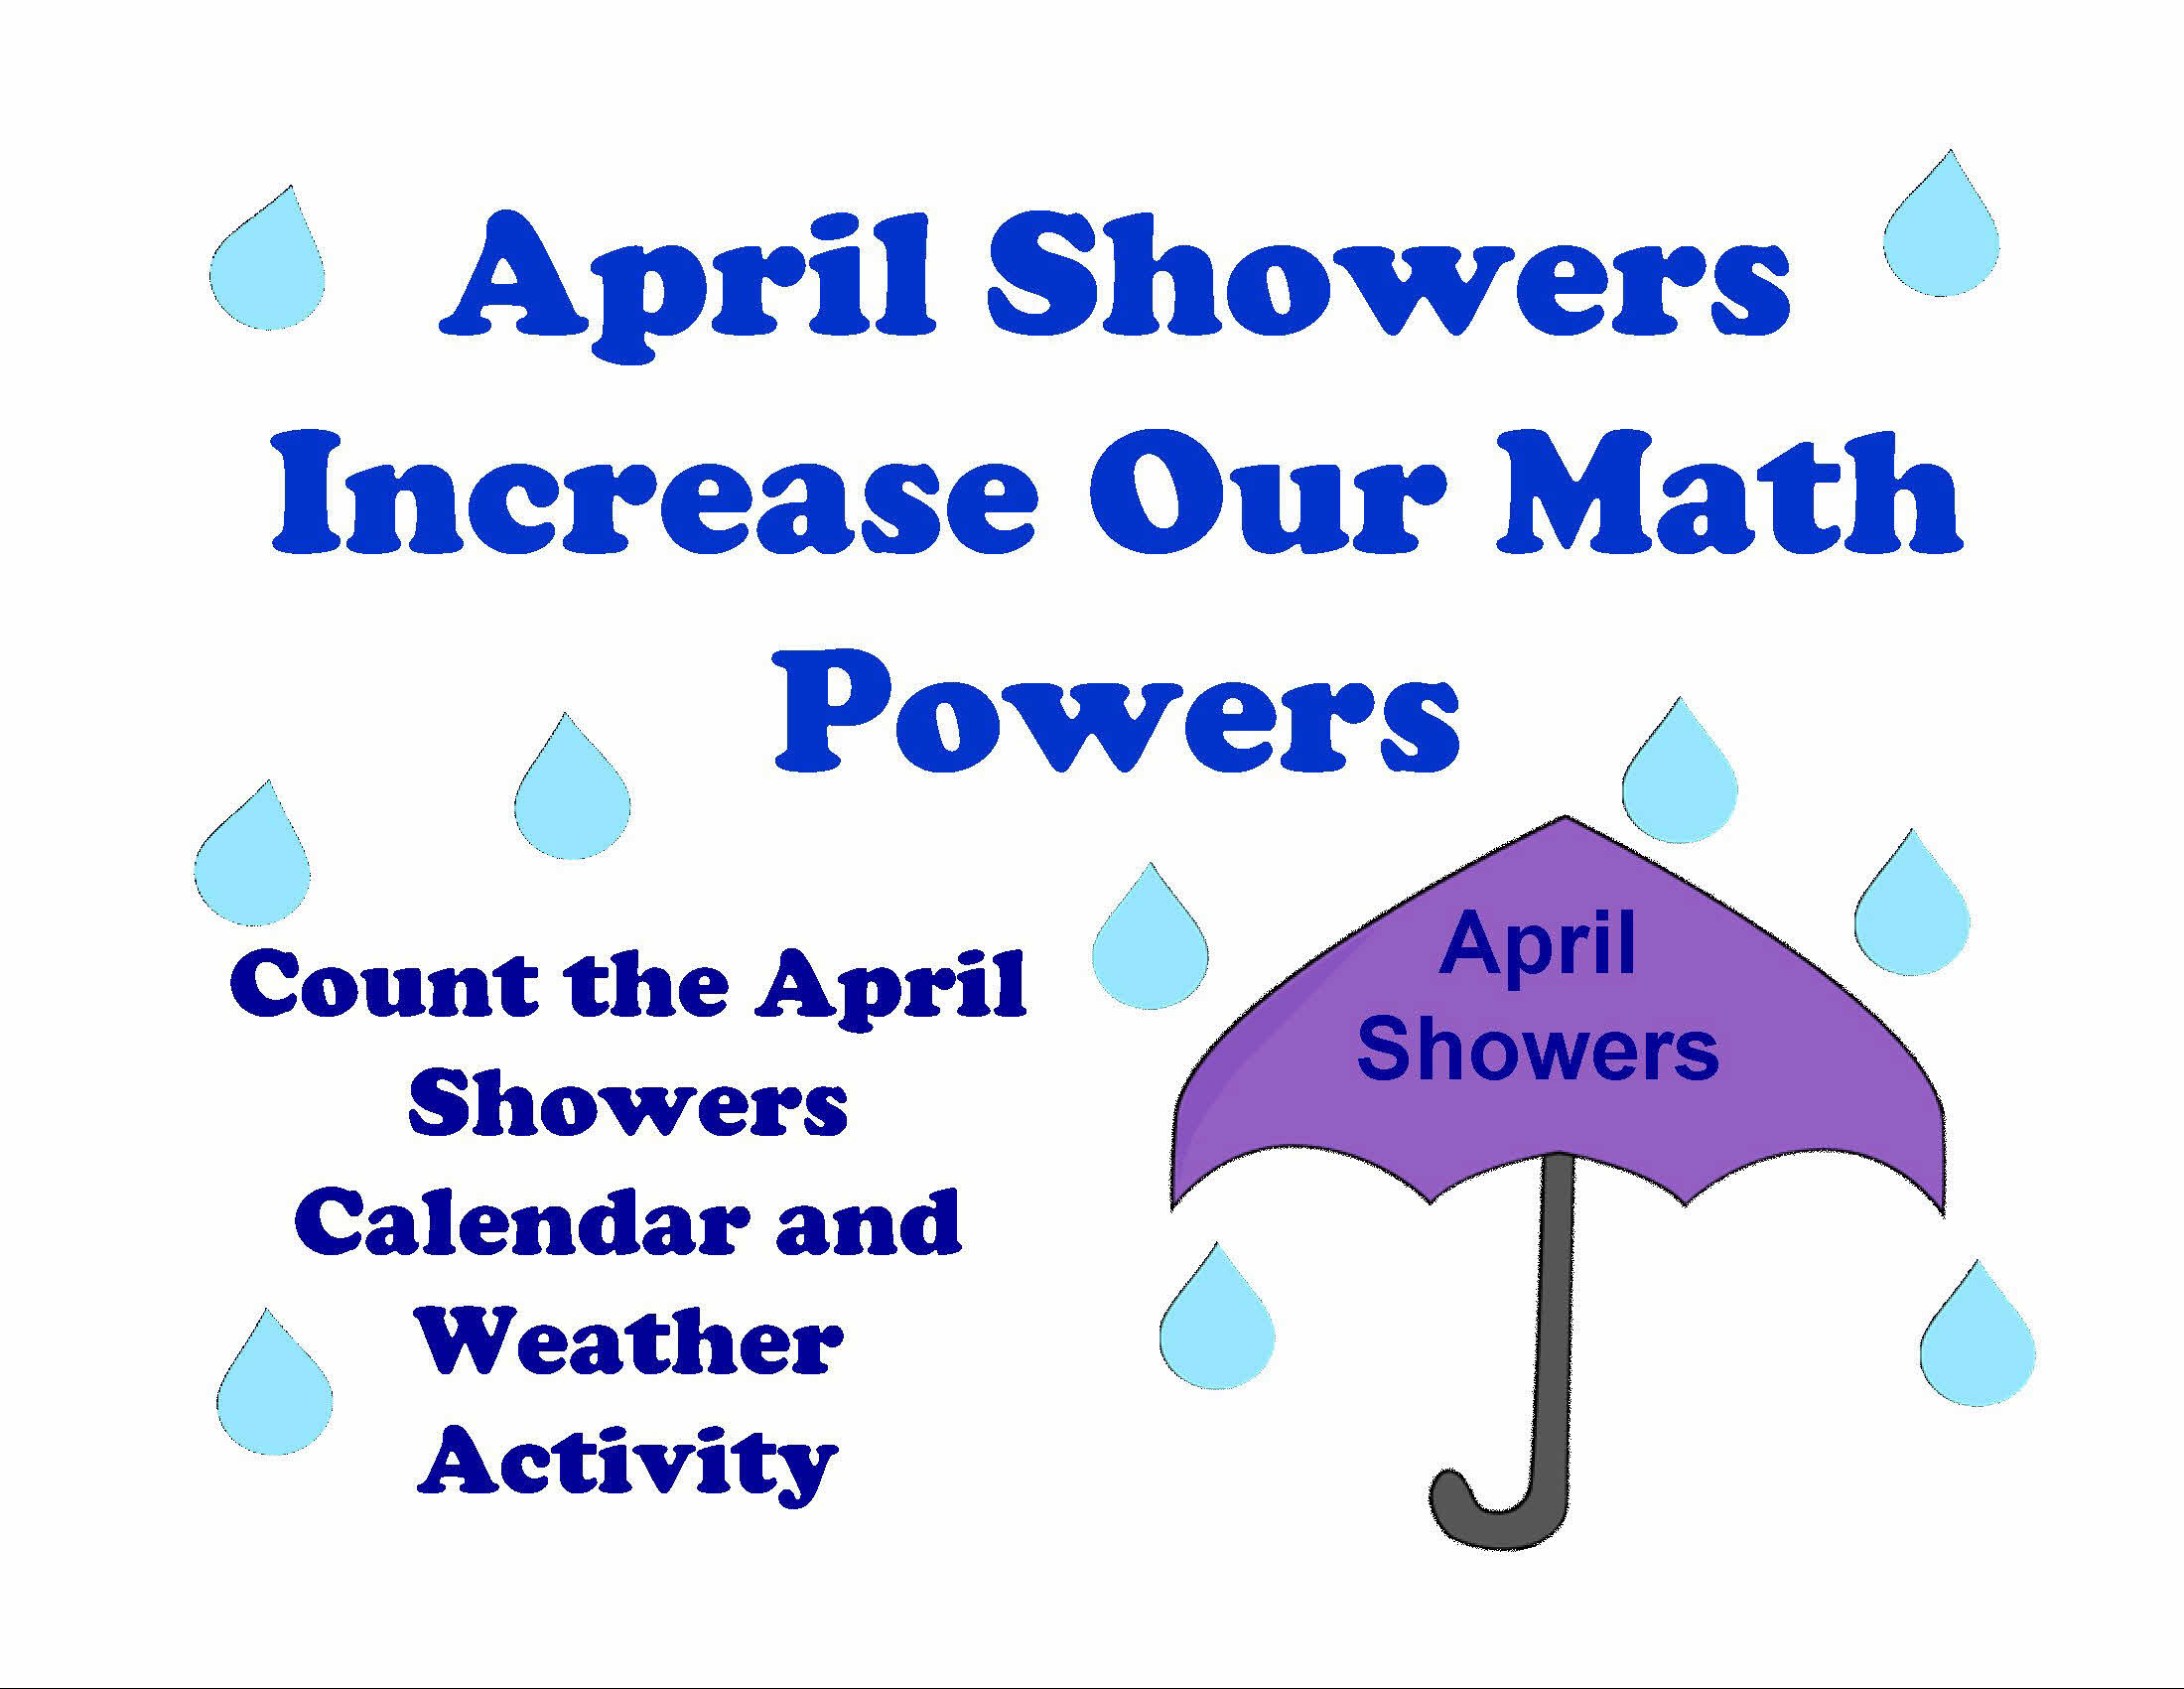 april showers calendar and weather activity lessons for little